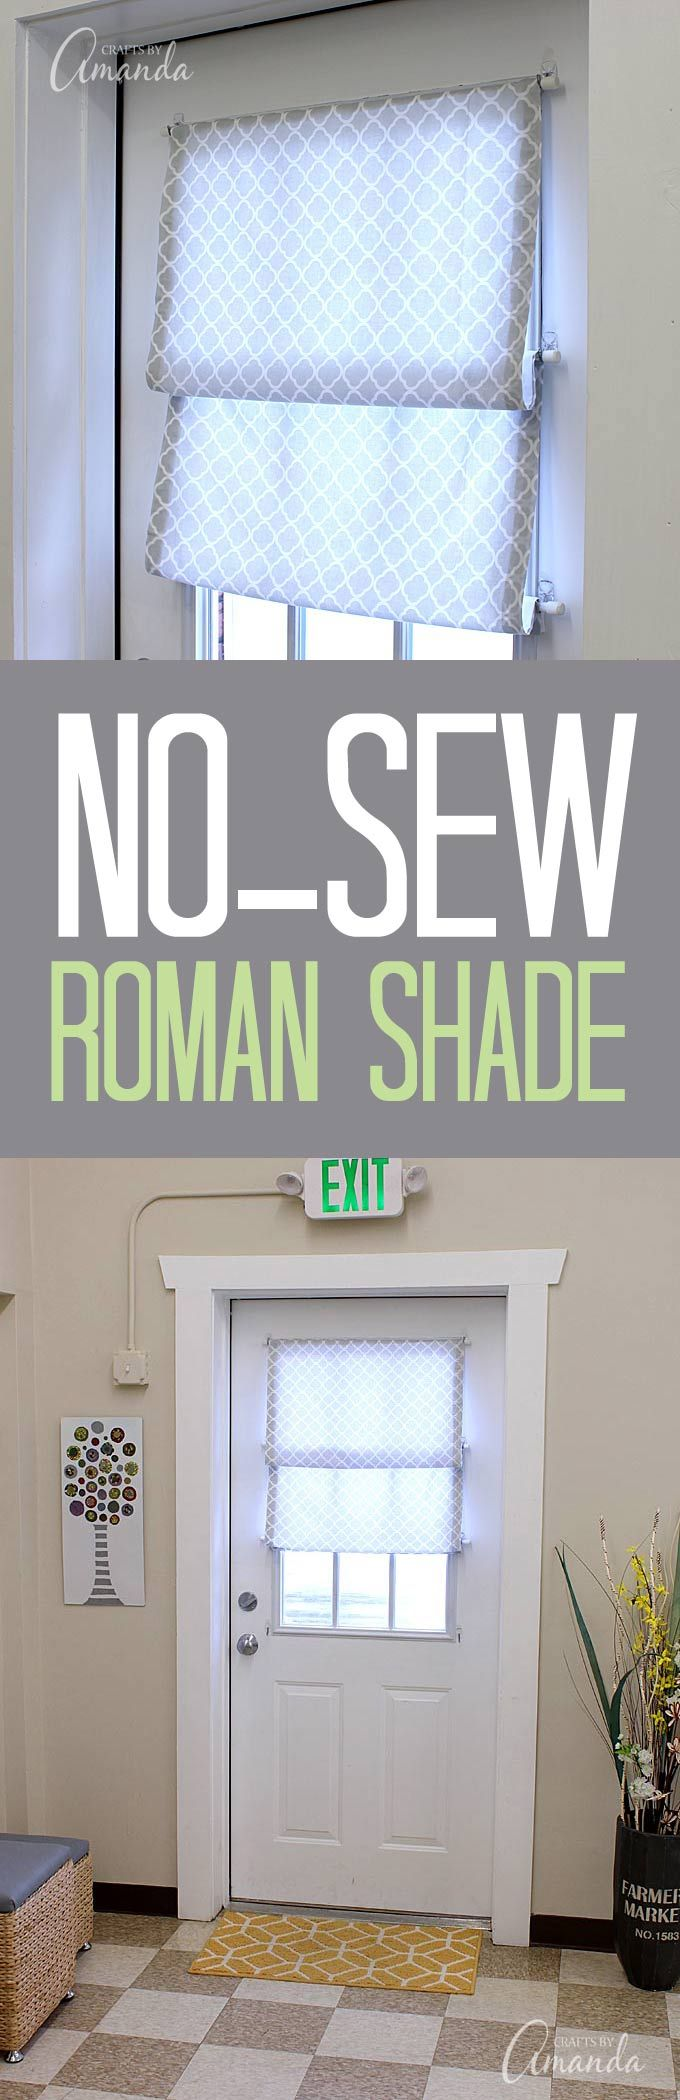 Beau How To Make A No Sew Roman Shade For Your Window Or Door. This One Is In  Amanda Formarou0027s Craft Studio (Crafts By Amanda).